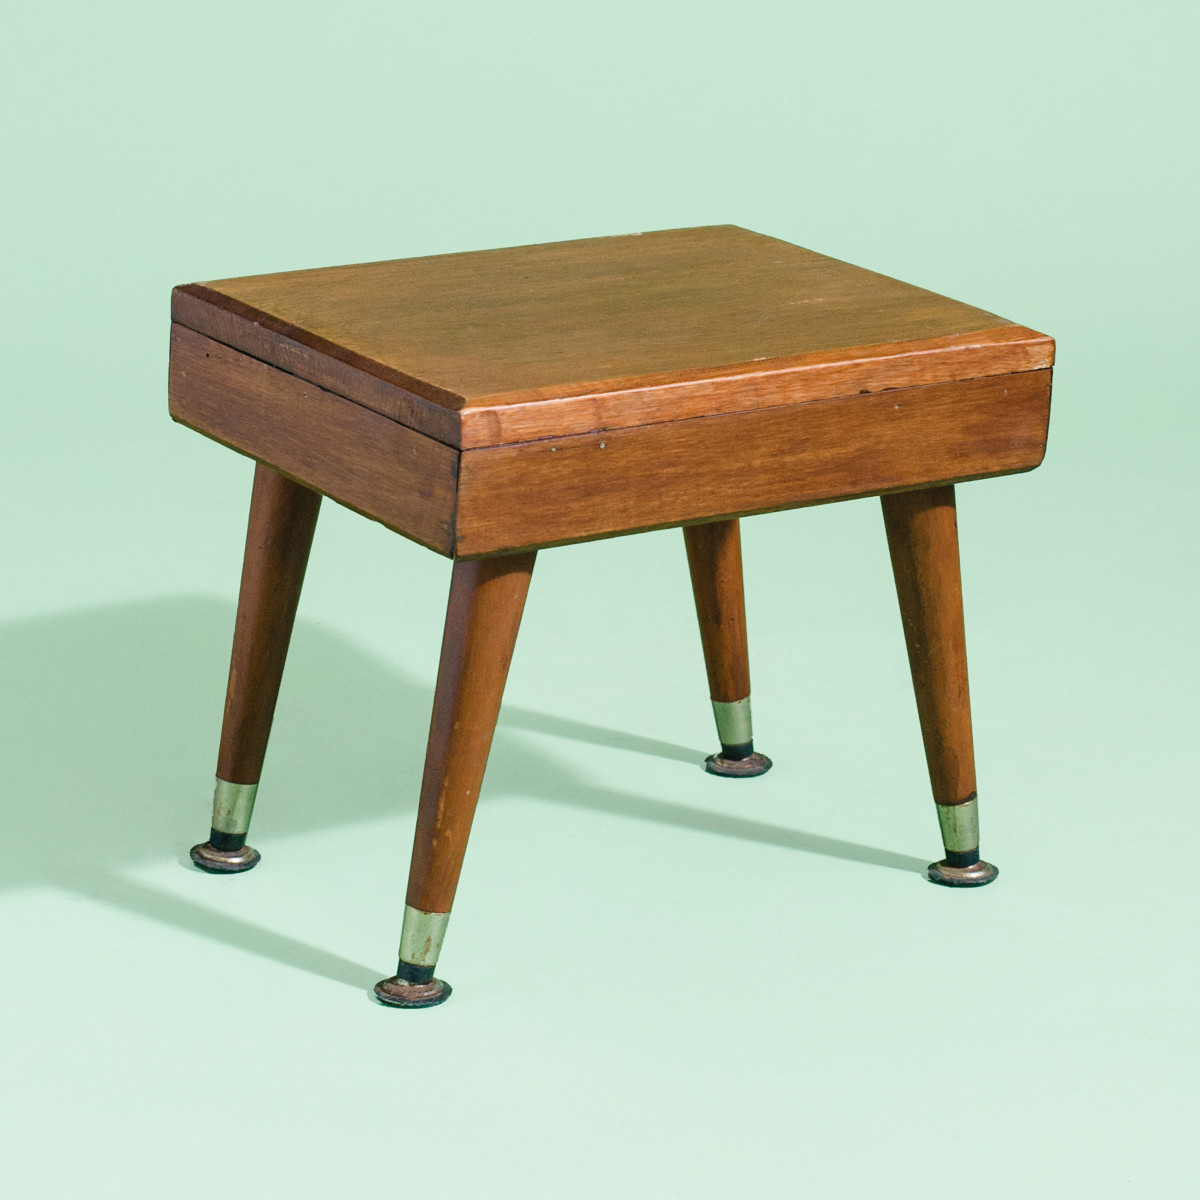 LN020- Wee Wooden Foot Stool-1